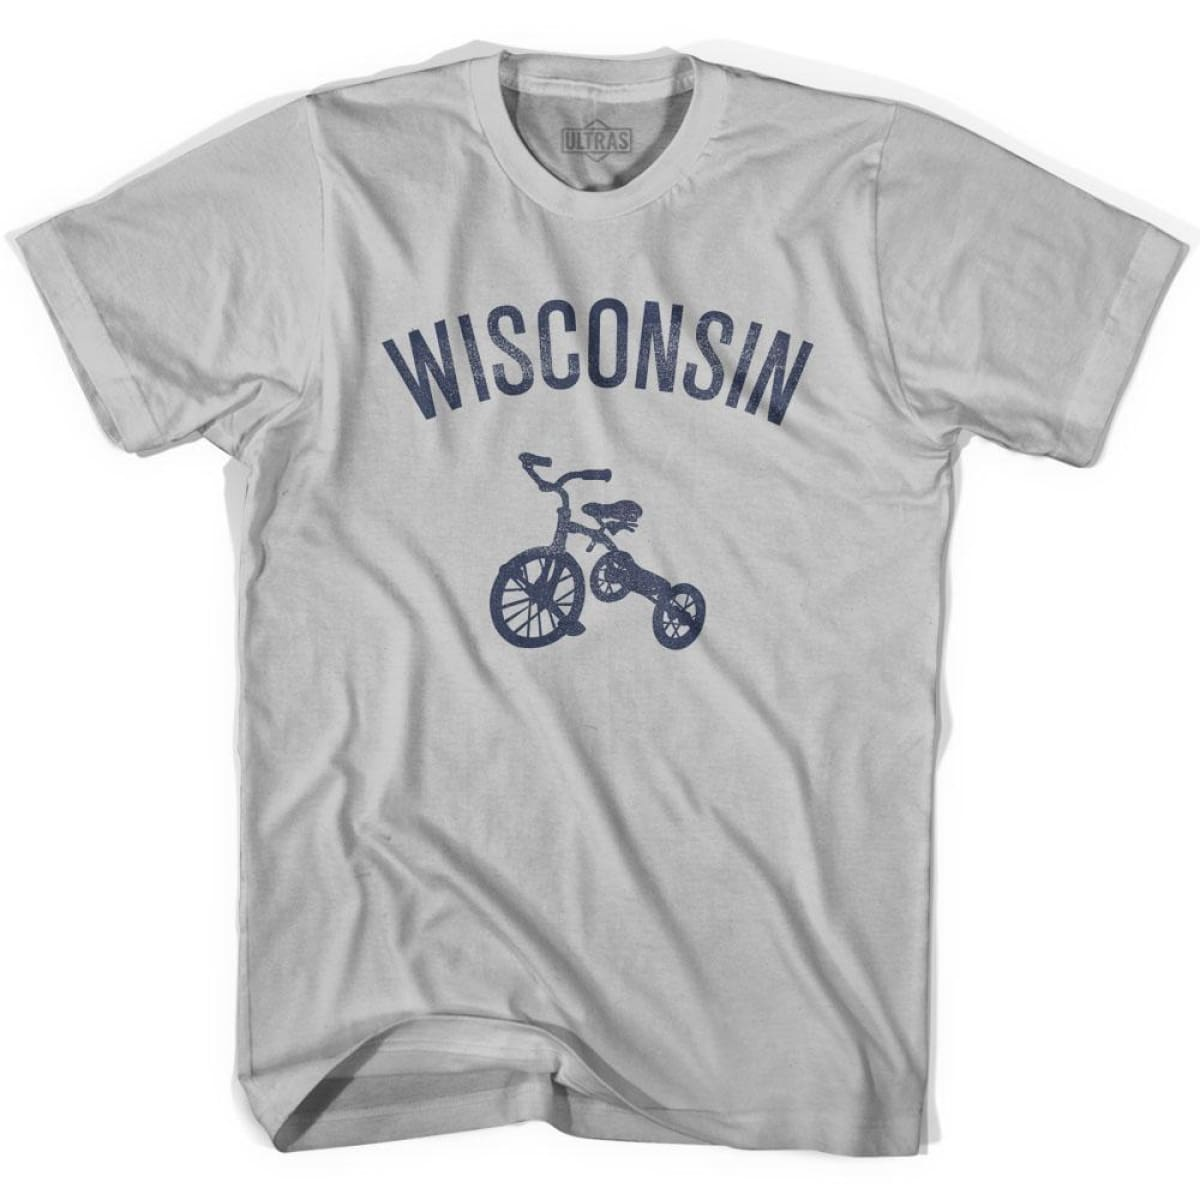 Wisconsin State Tricycle Adult Cotton T-shirt - Cool Grey / Adult Small - Tricycle State